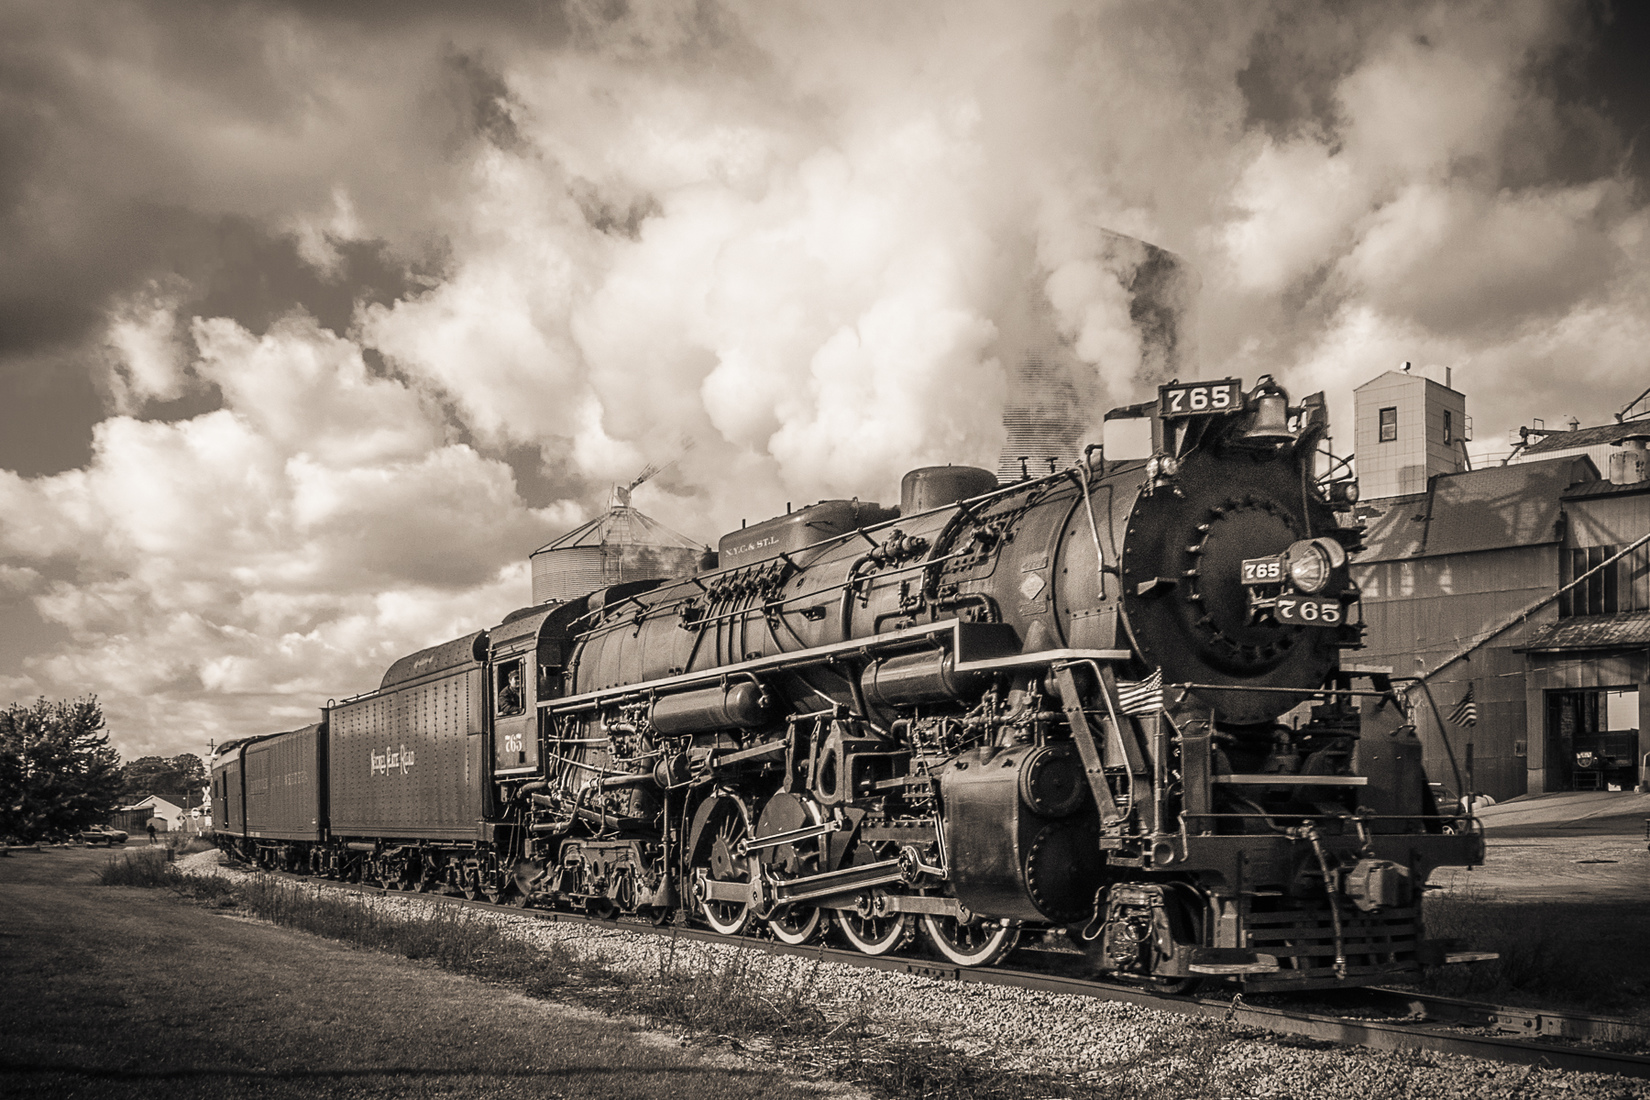 Iron, Steel and Steam NKP 765 Duotone